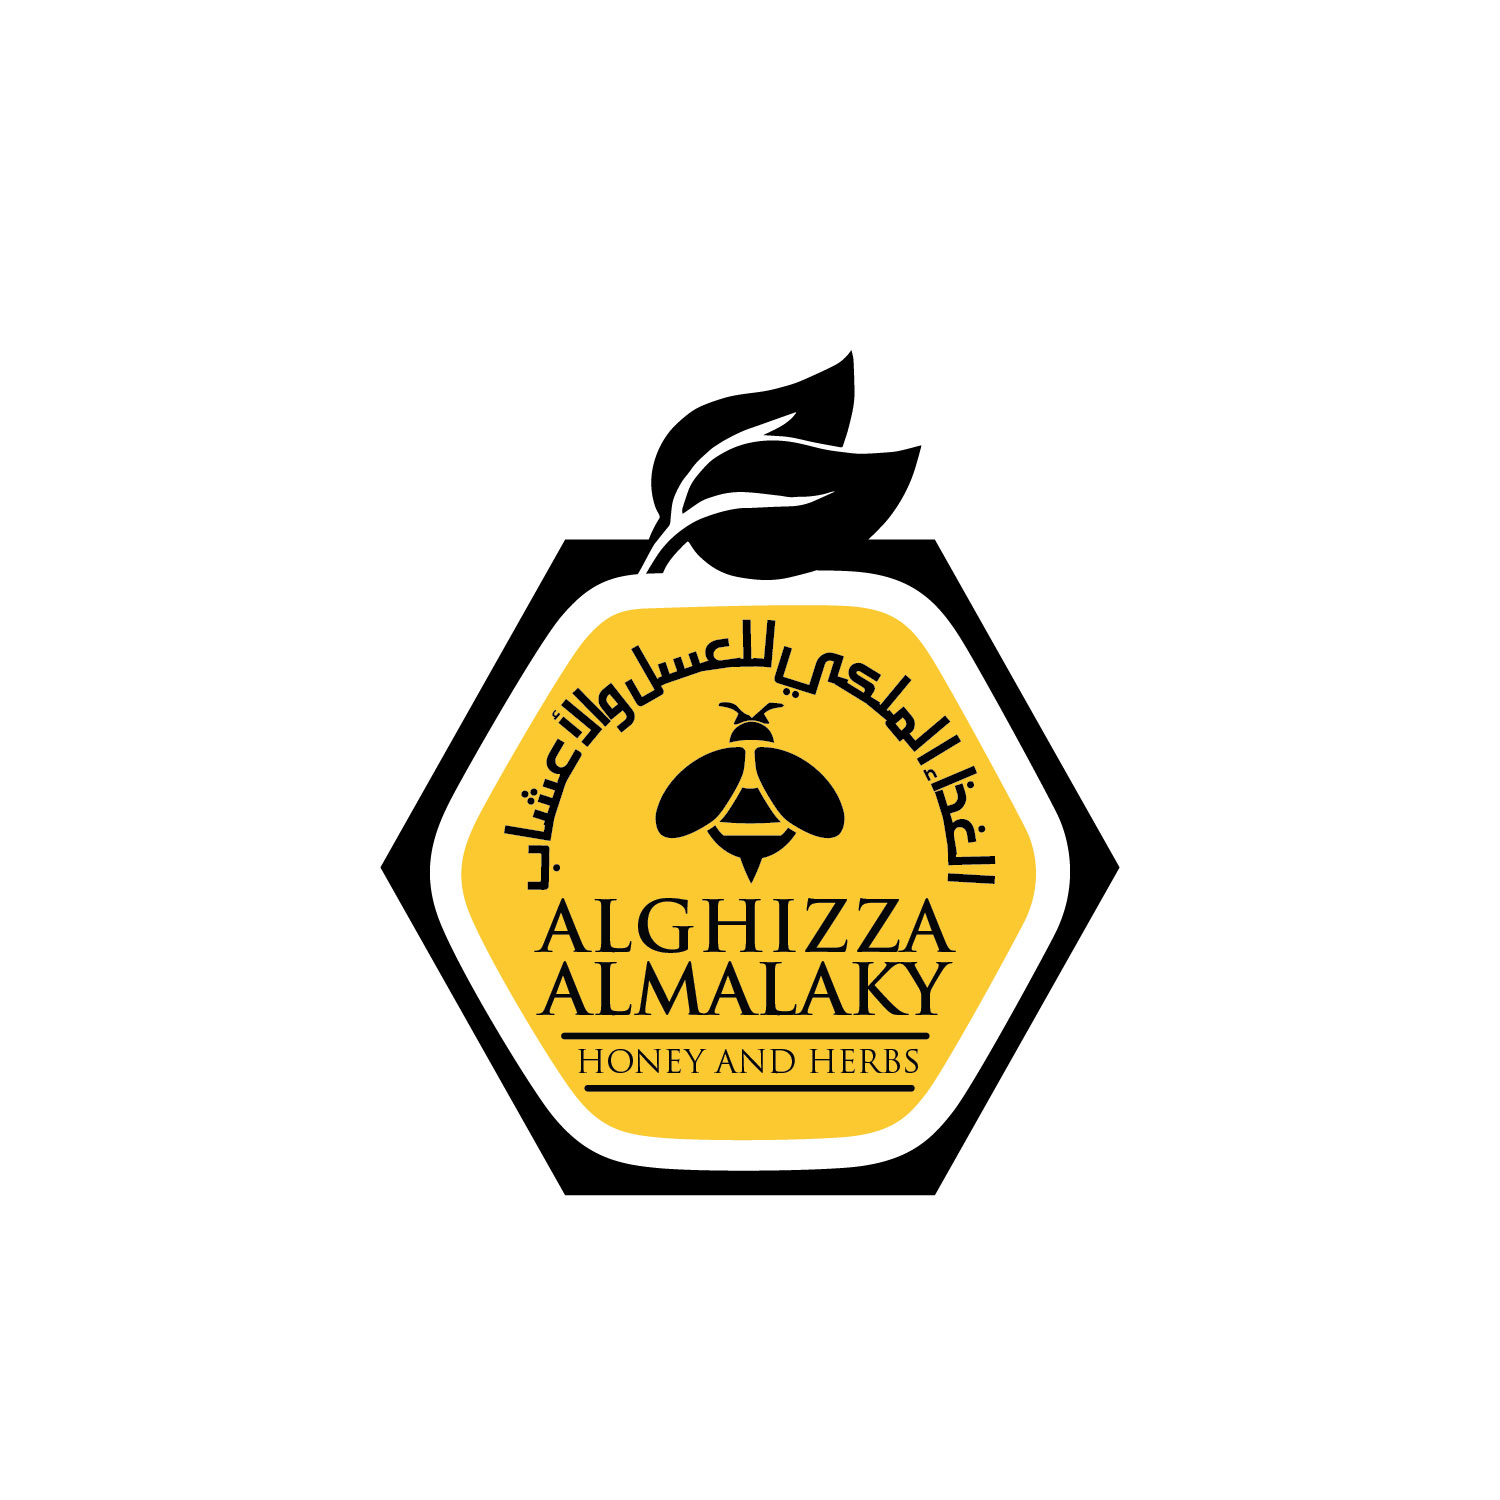 Logo Design by lagalag - Entry No. 58 in the Logo Design Contest Artistic Logo Design for ALGHIZZA ALMALAKY HONEY AND HERBS.